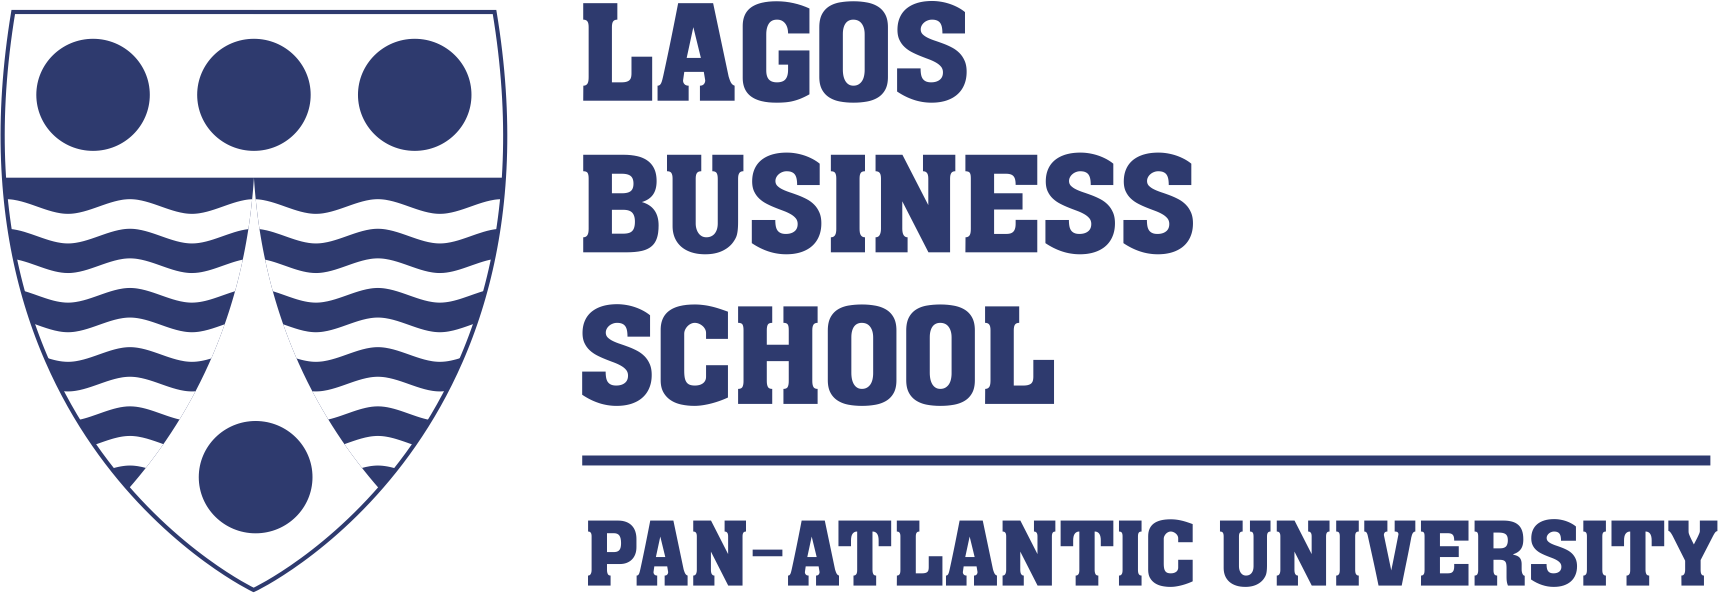 lagos-business-school.png